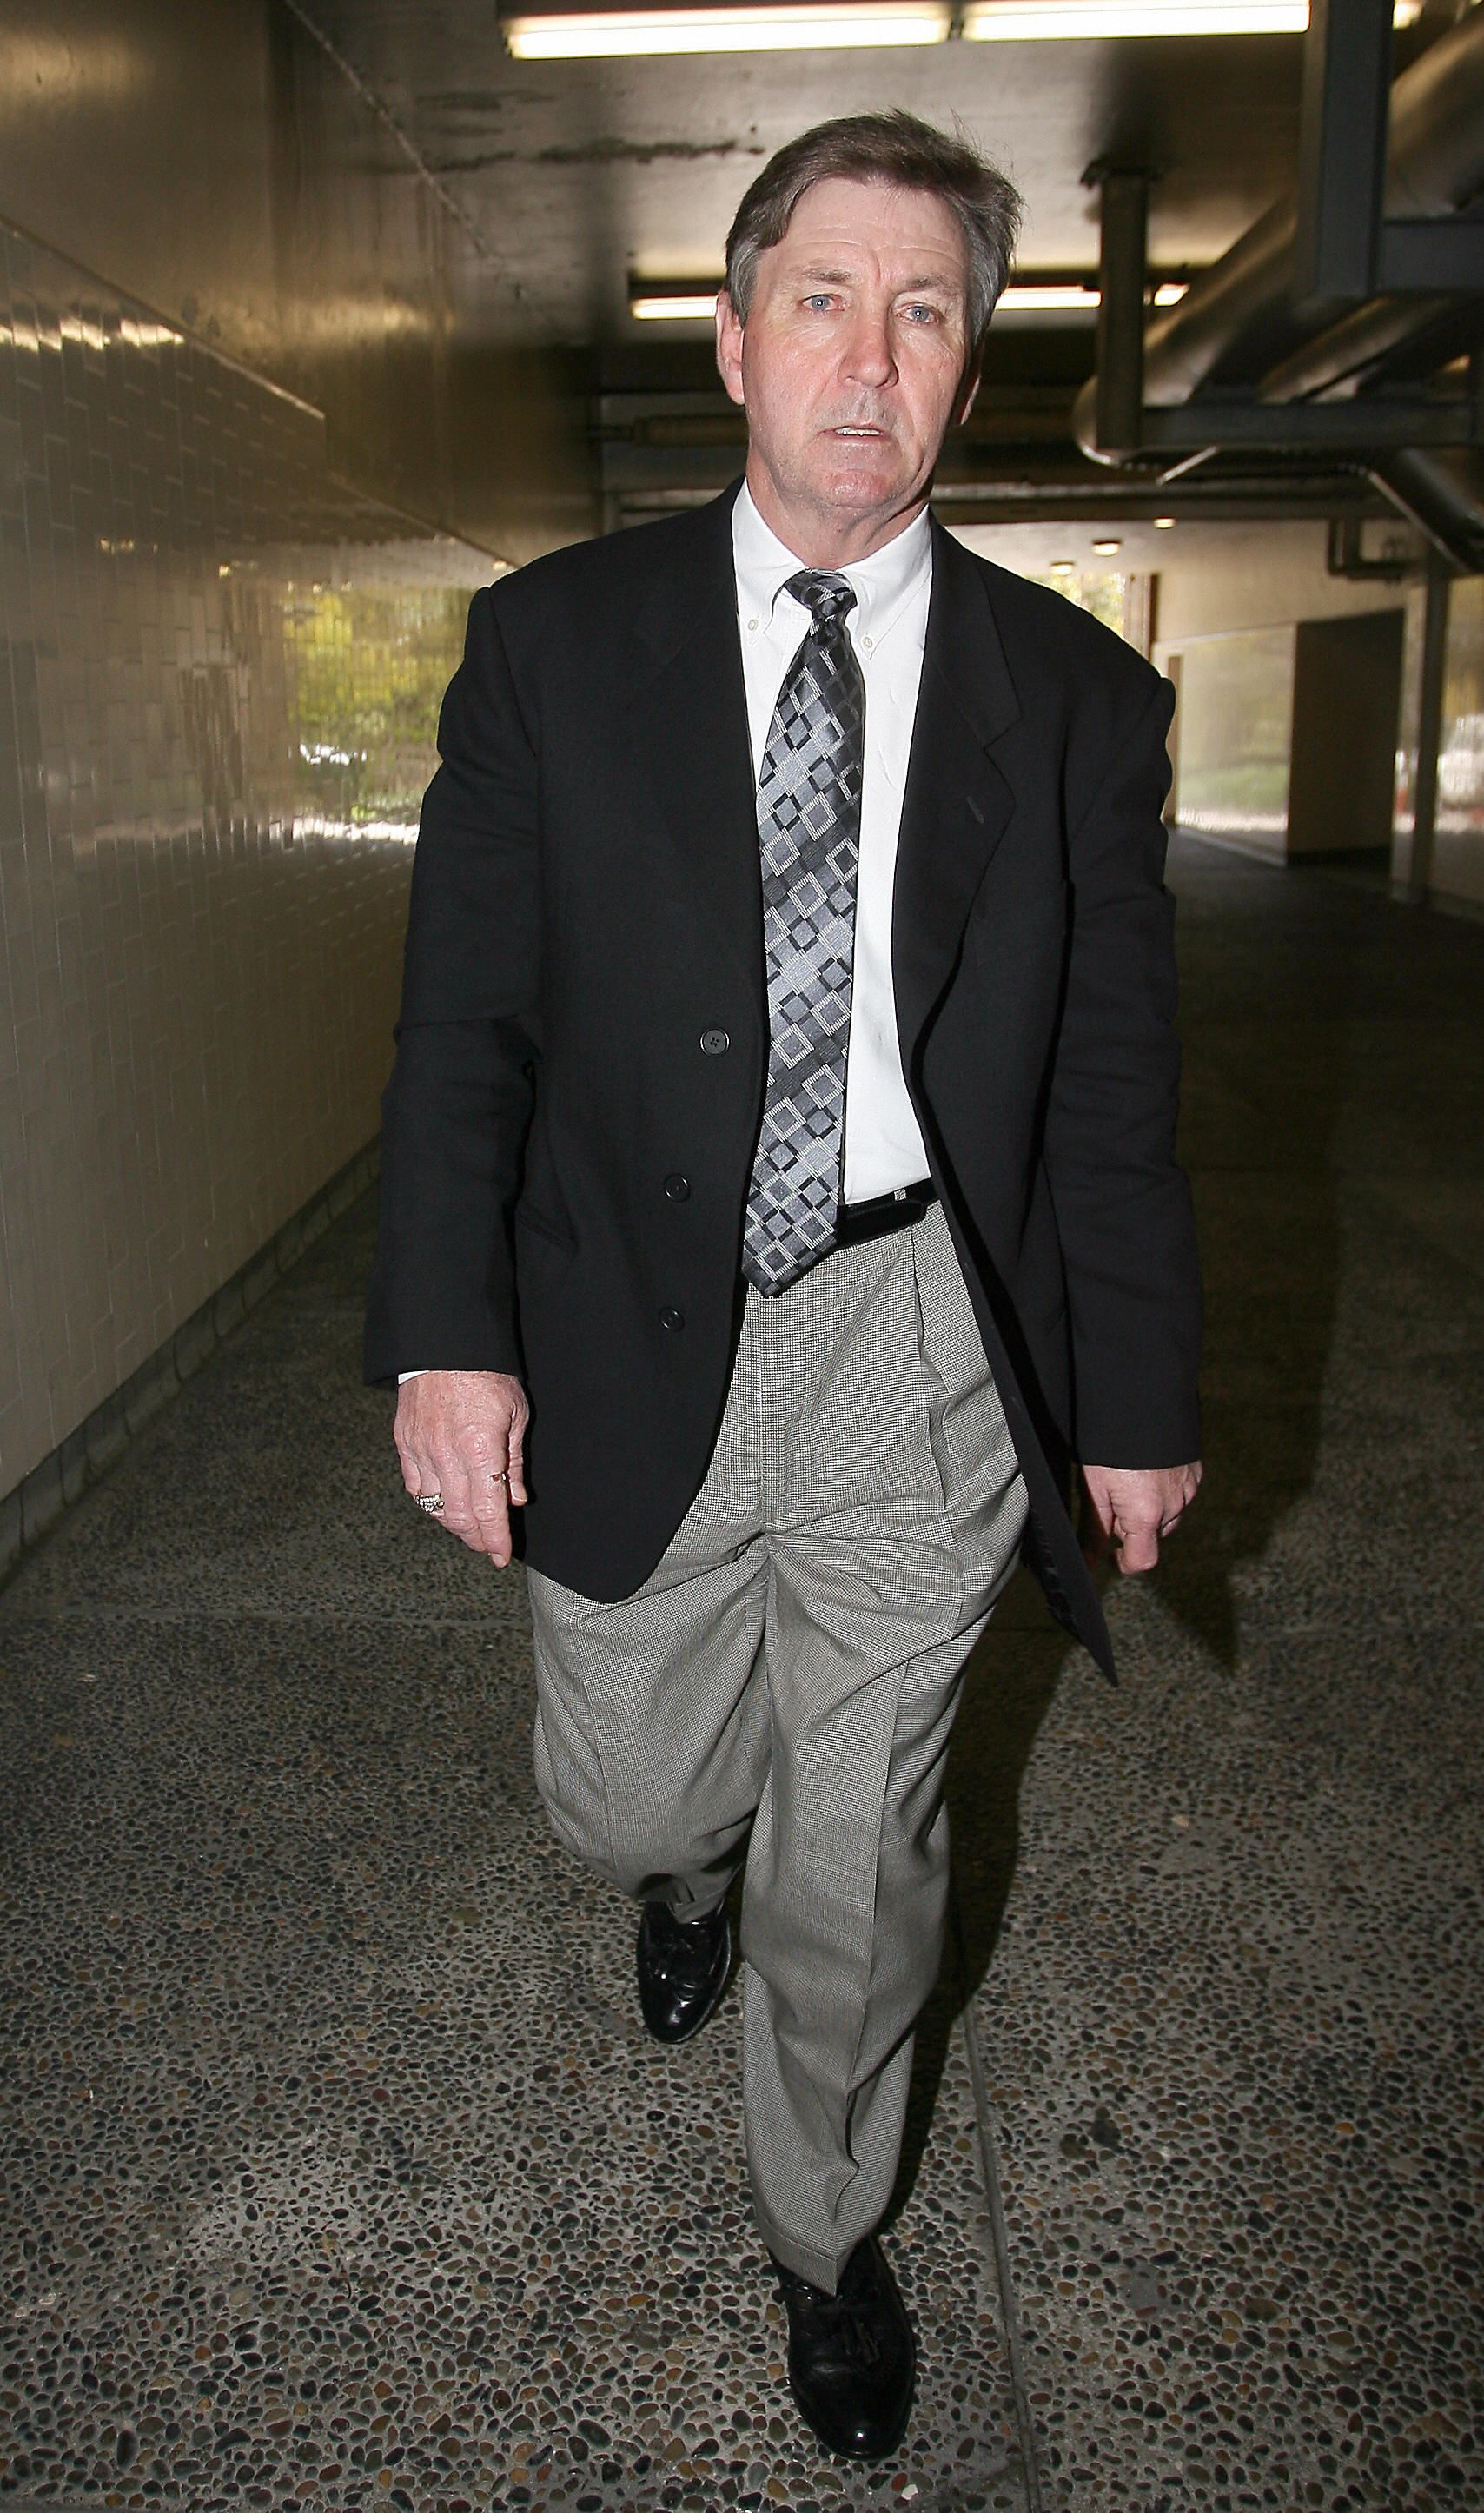 Britney Spears' father Jamie Spears leaving the Los Angeles County Superior courthouse in Los Angeles, California | Photo: Valerie Macon/AFP via Getty Images)